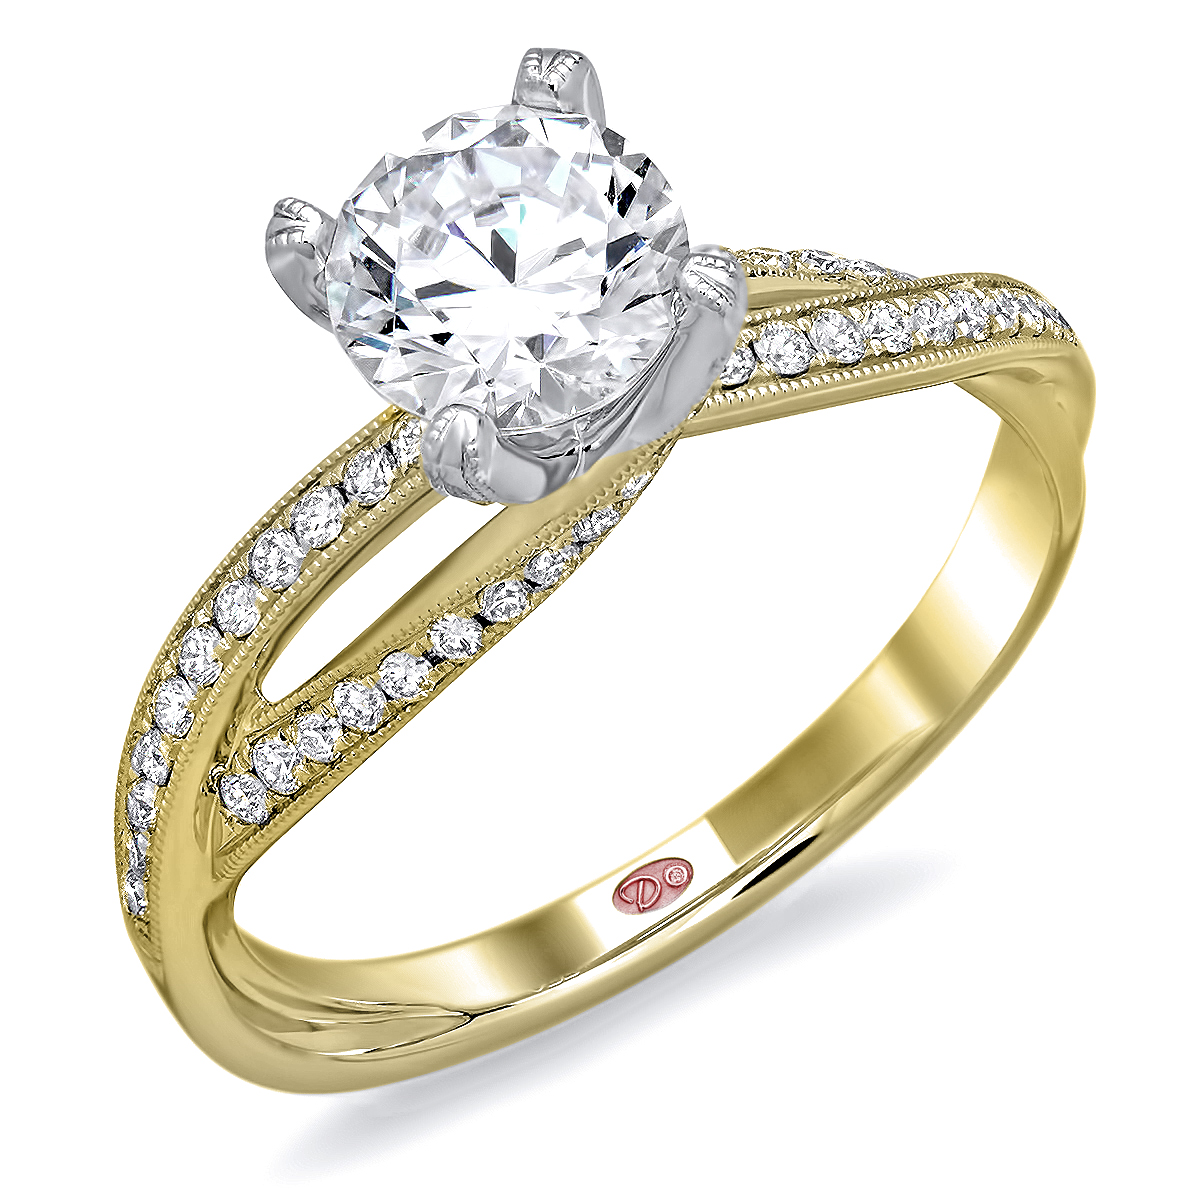 Designer Bridal Rings Dw6079